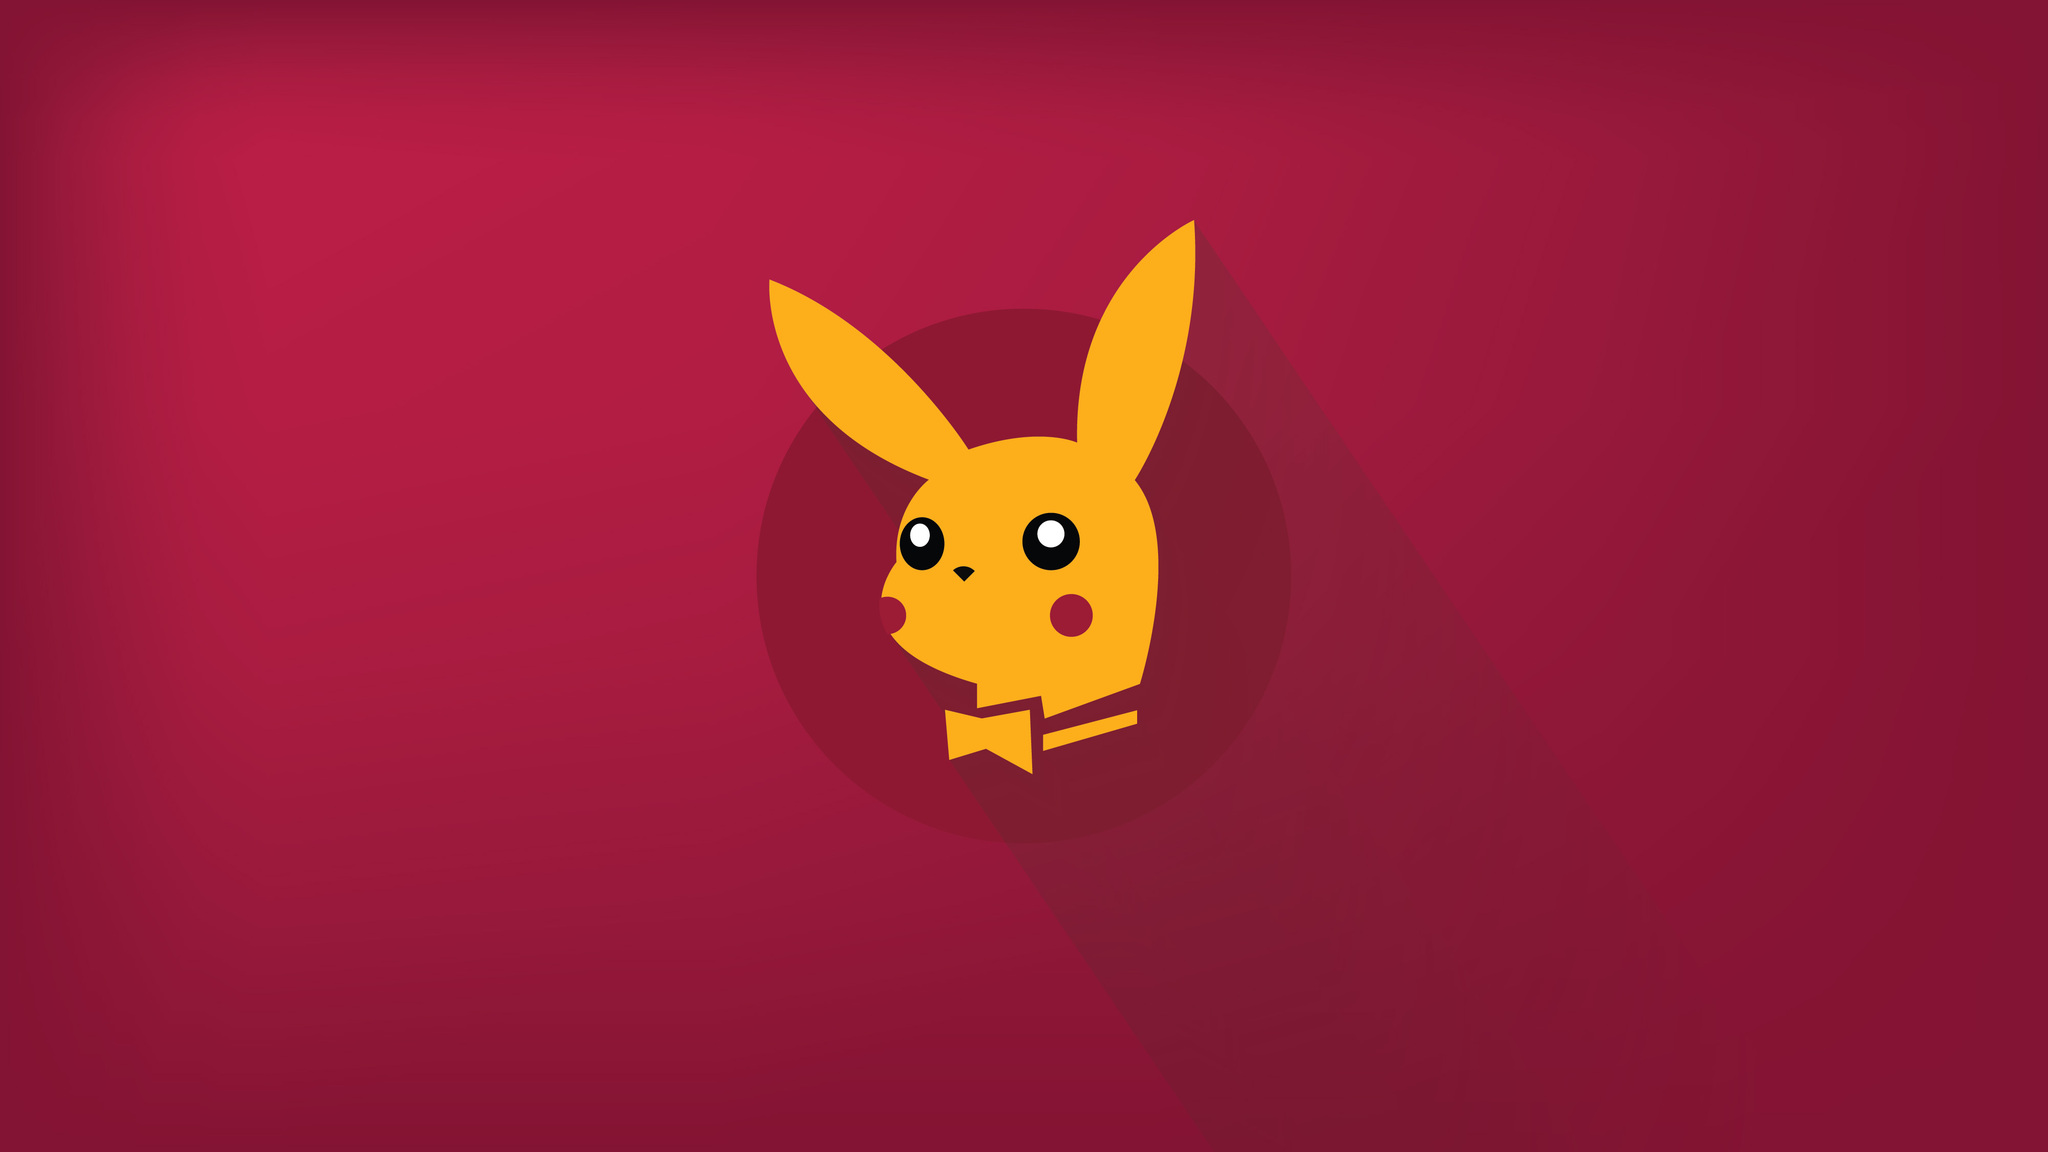 2048x1152 Pikachu 2048x1152 Resolution Hd 4k Wallpapers Images Backgrounds Photos And Pictures